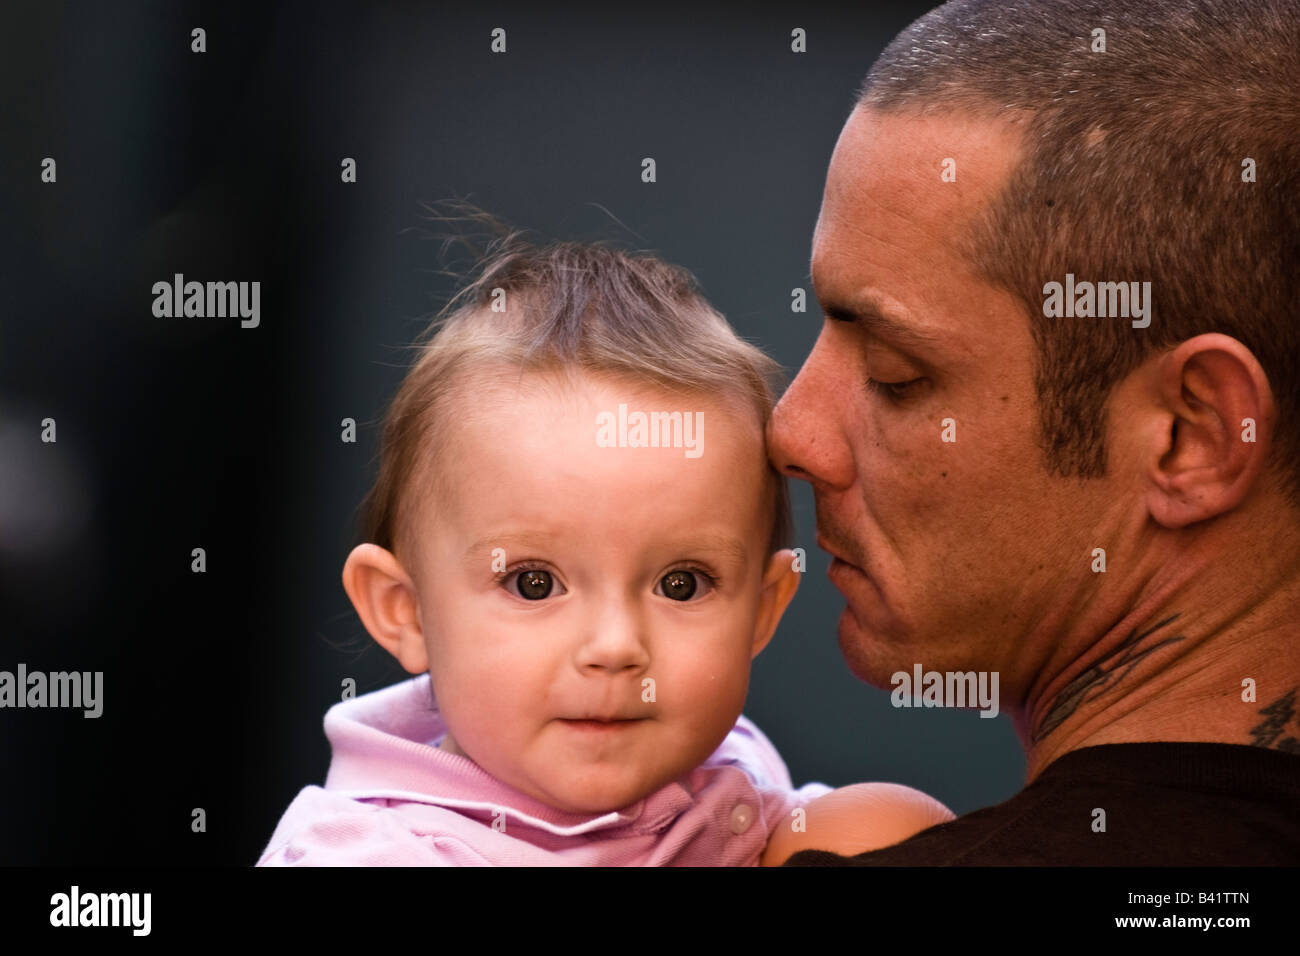 a 35 year old man with his 1 1/2 year old daughter - Stock Image